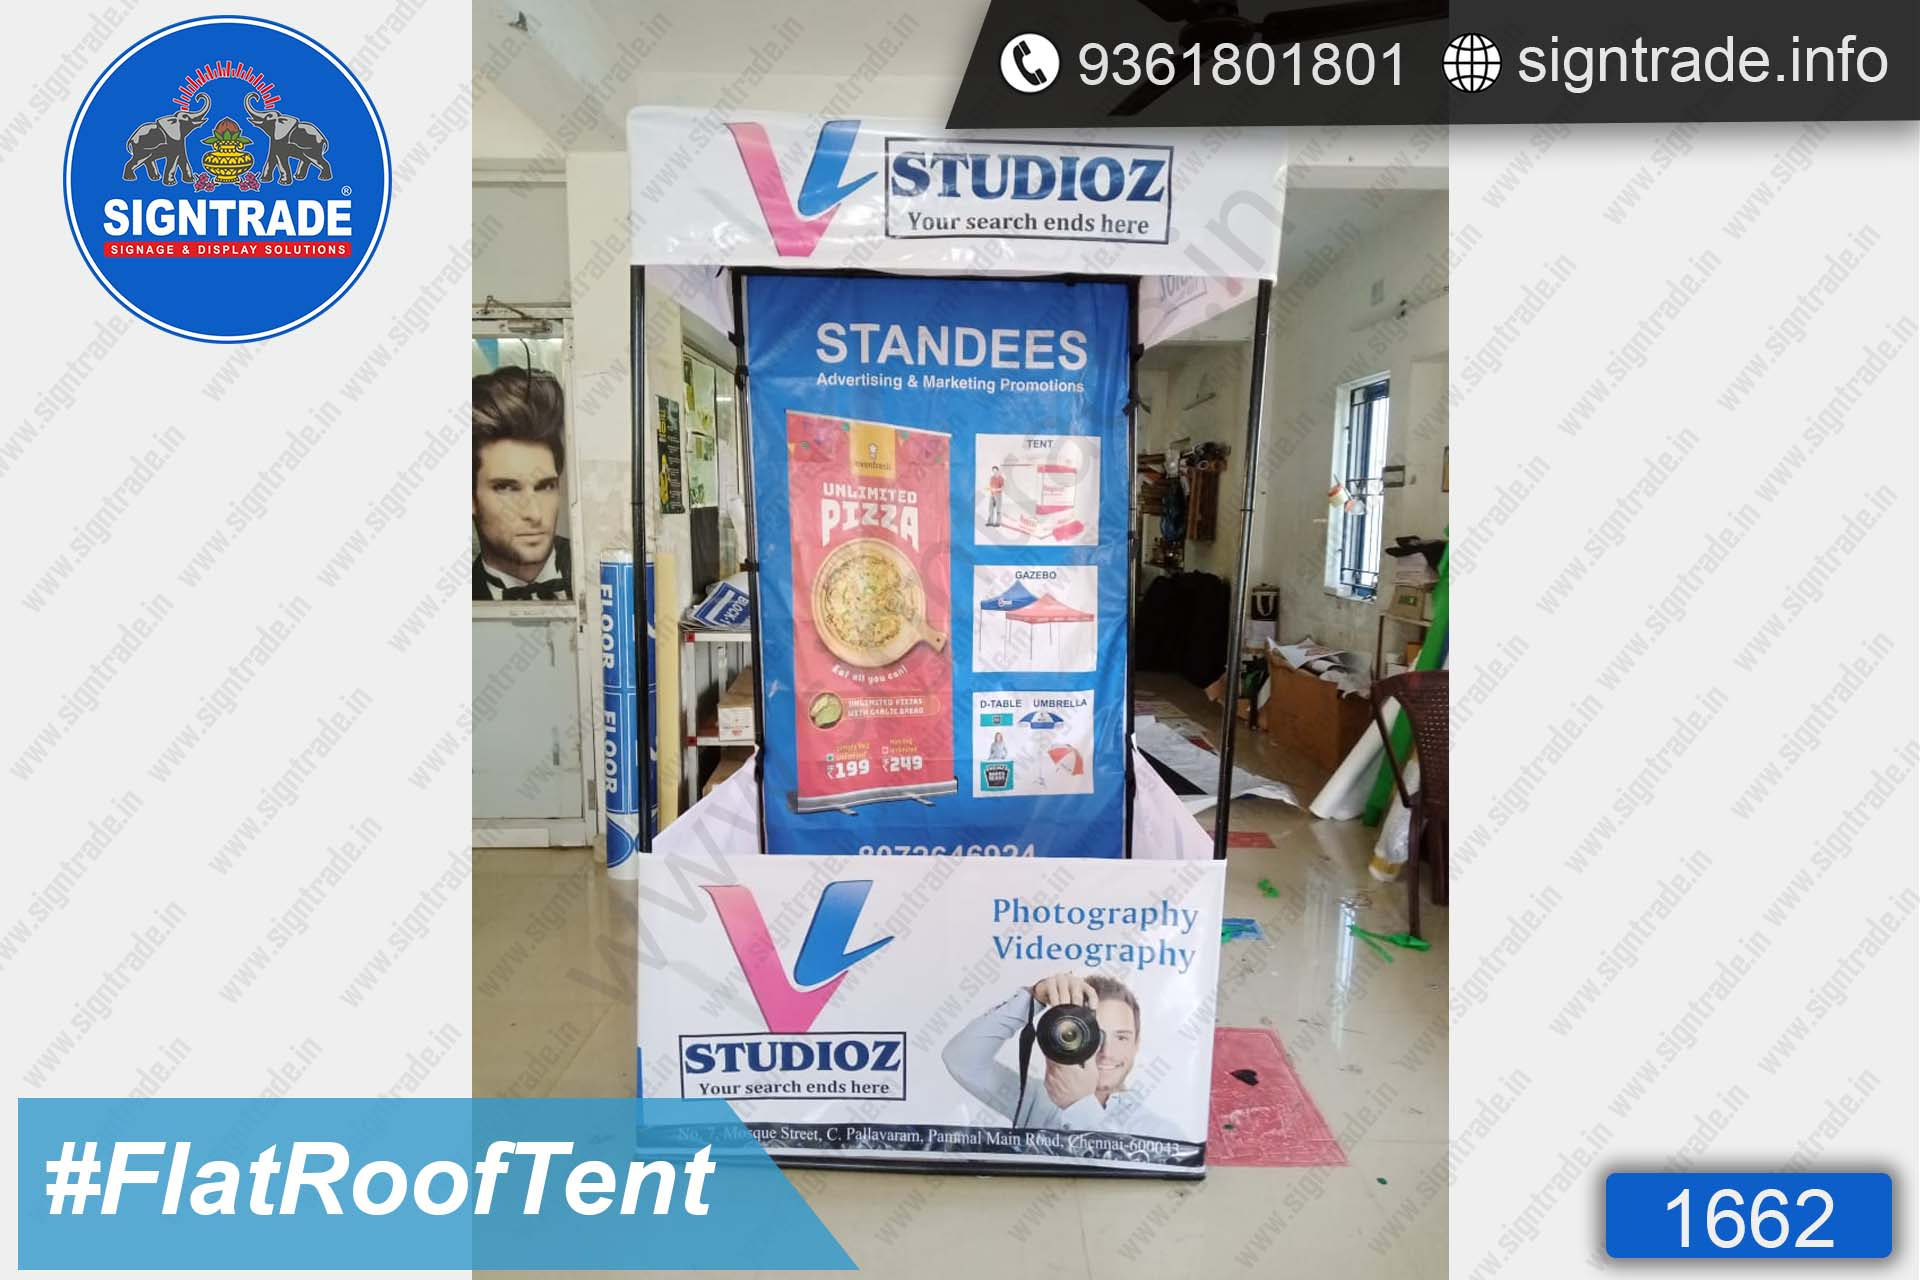 V Studioz - Canopy Tent - SIGNTRADE - Promotional Canopy Tent Manufacturers in Chennai